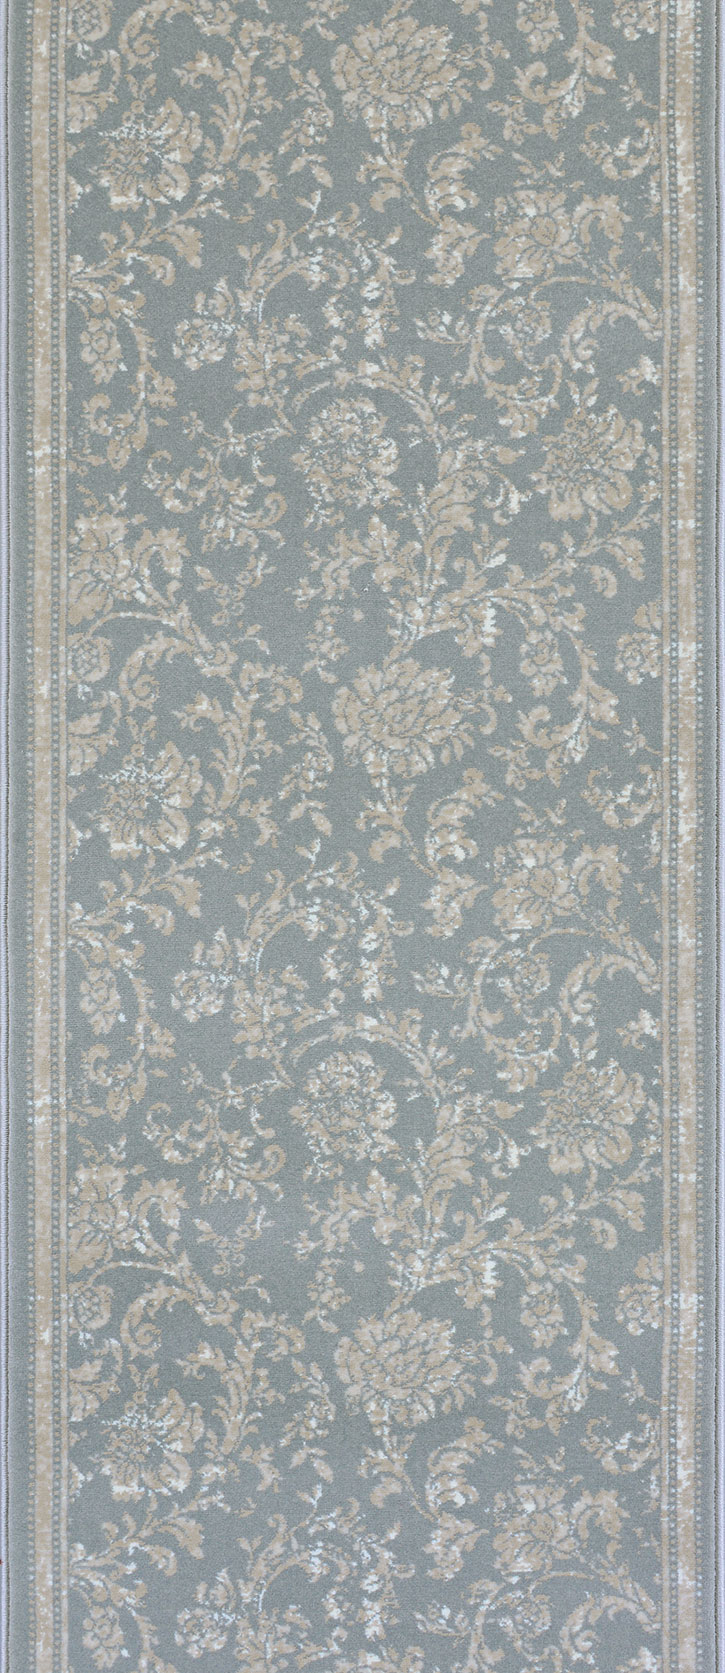 Couristan Lakely Cbk2 0001a Seafoam Hall And Stair Runner